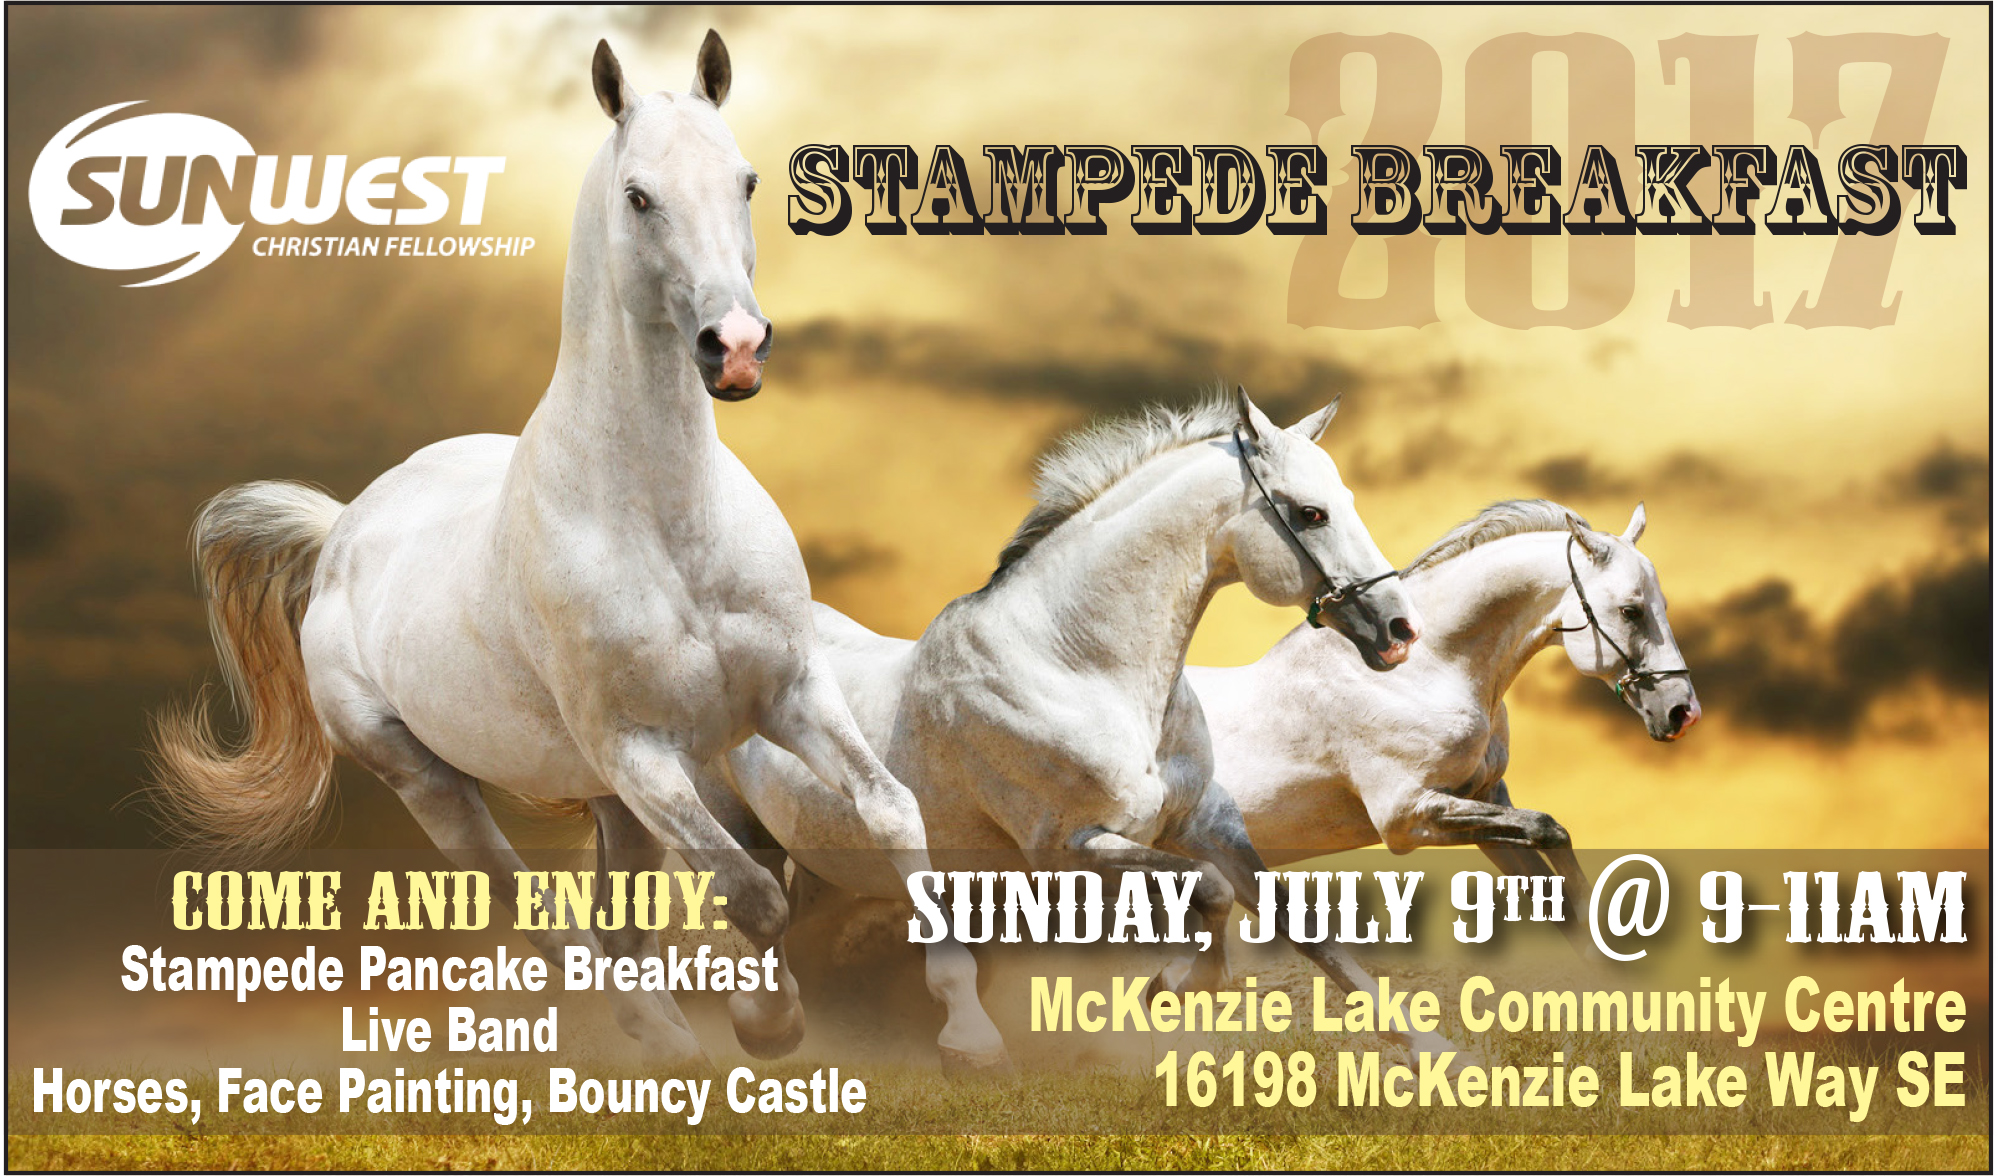 Free Stampede Breakfast Sunwest Church 2017